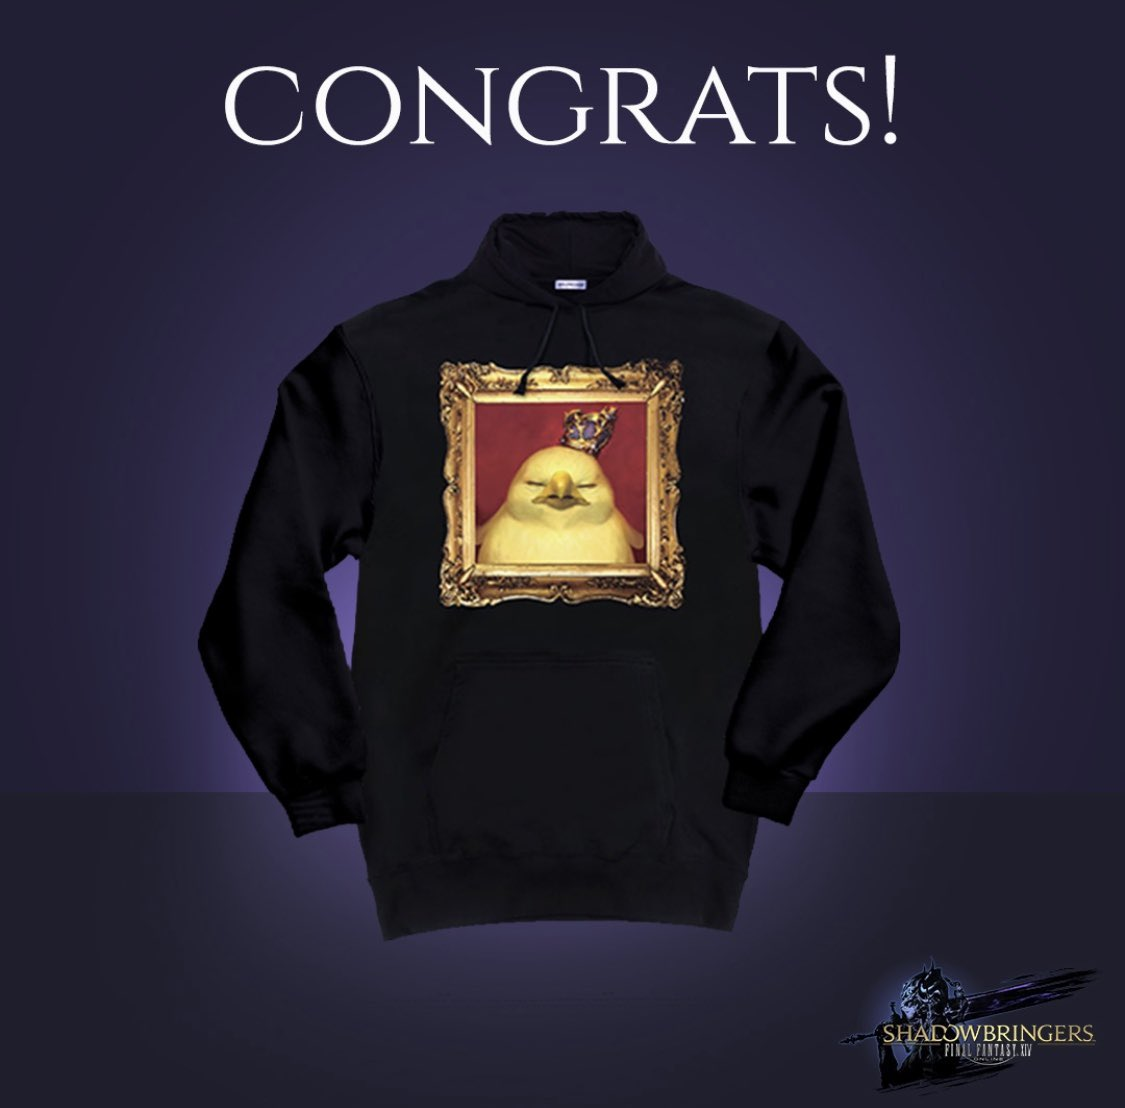 Congrats to the true #WarriorofDarkness, @Summeraltenbur4! Theyve won a custom chocobo hoodie and a copy of FINAL FANTASY XIV: Shadowbringers! #FFXIV #Shadowbringers available now: bit.ly/2XkGKnh Giveaway Rules: bit.ly/2FKKLXE #FFXIV #Shadowbringers #Ad